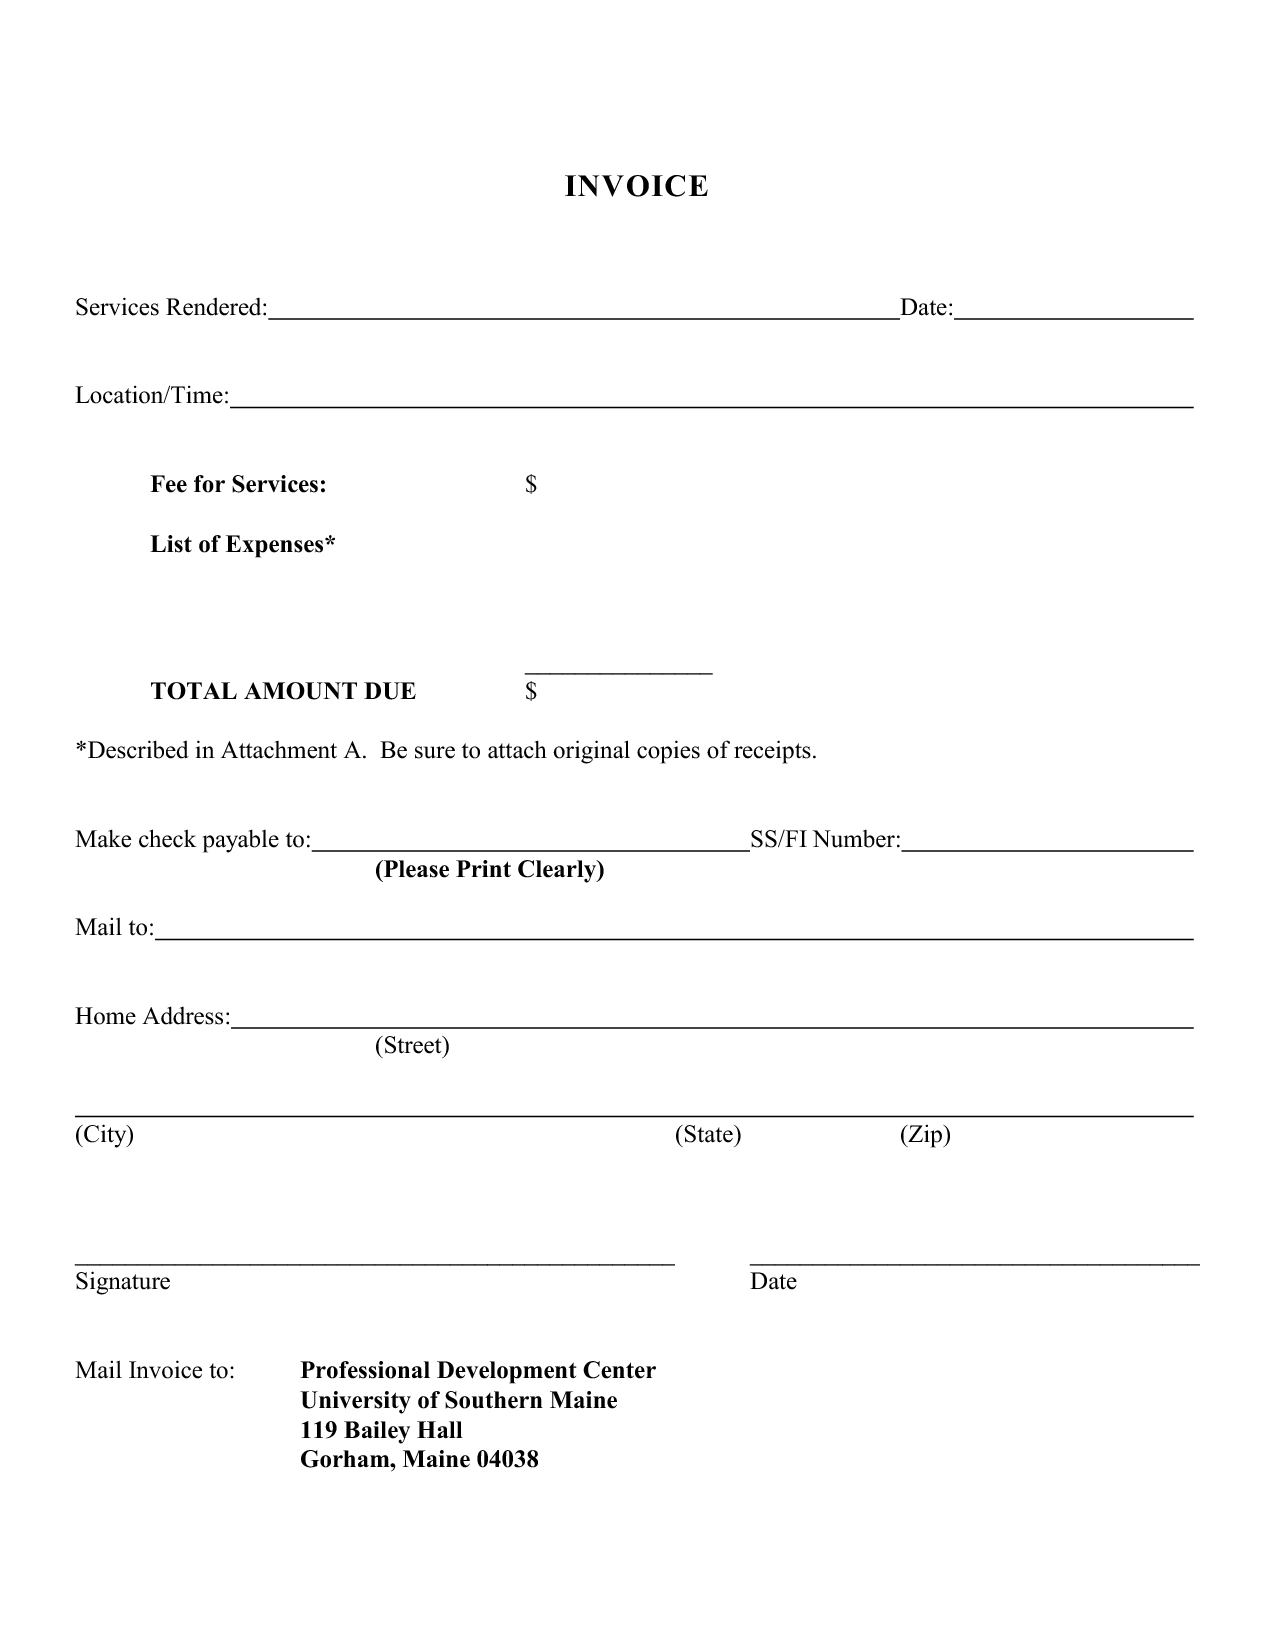 invoice for services rendered template free Black.dgfitness.co